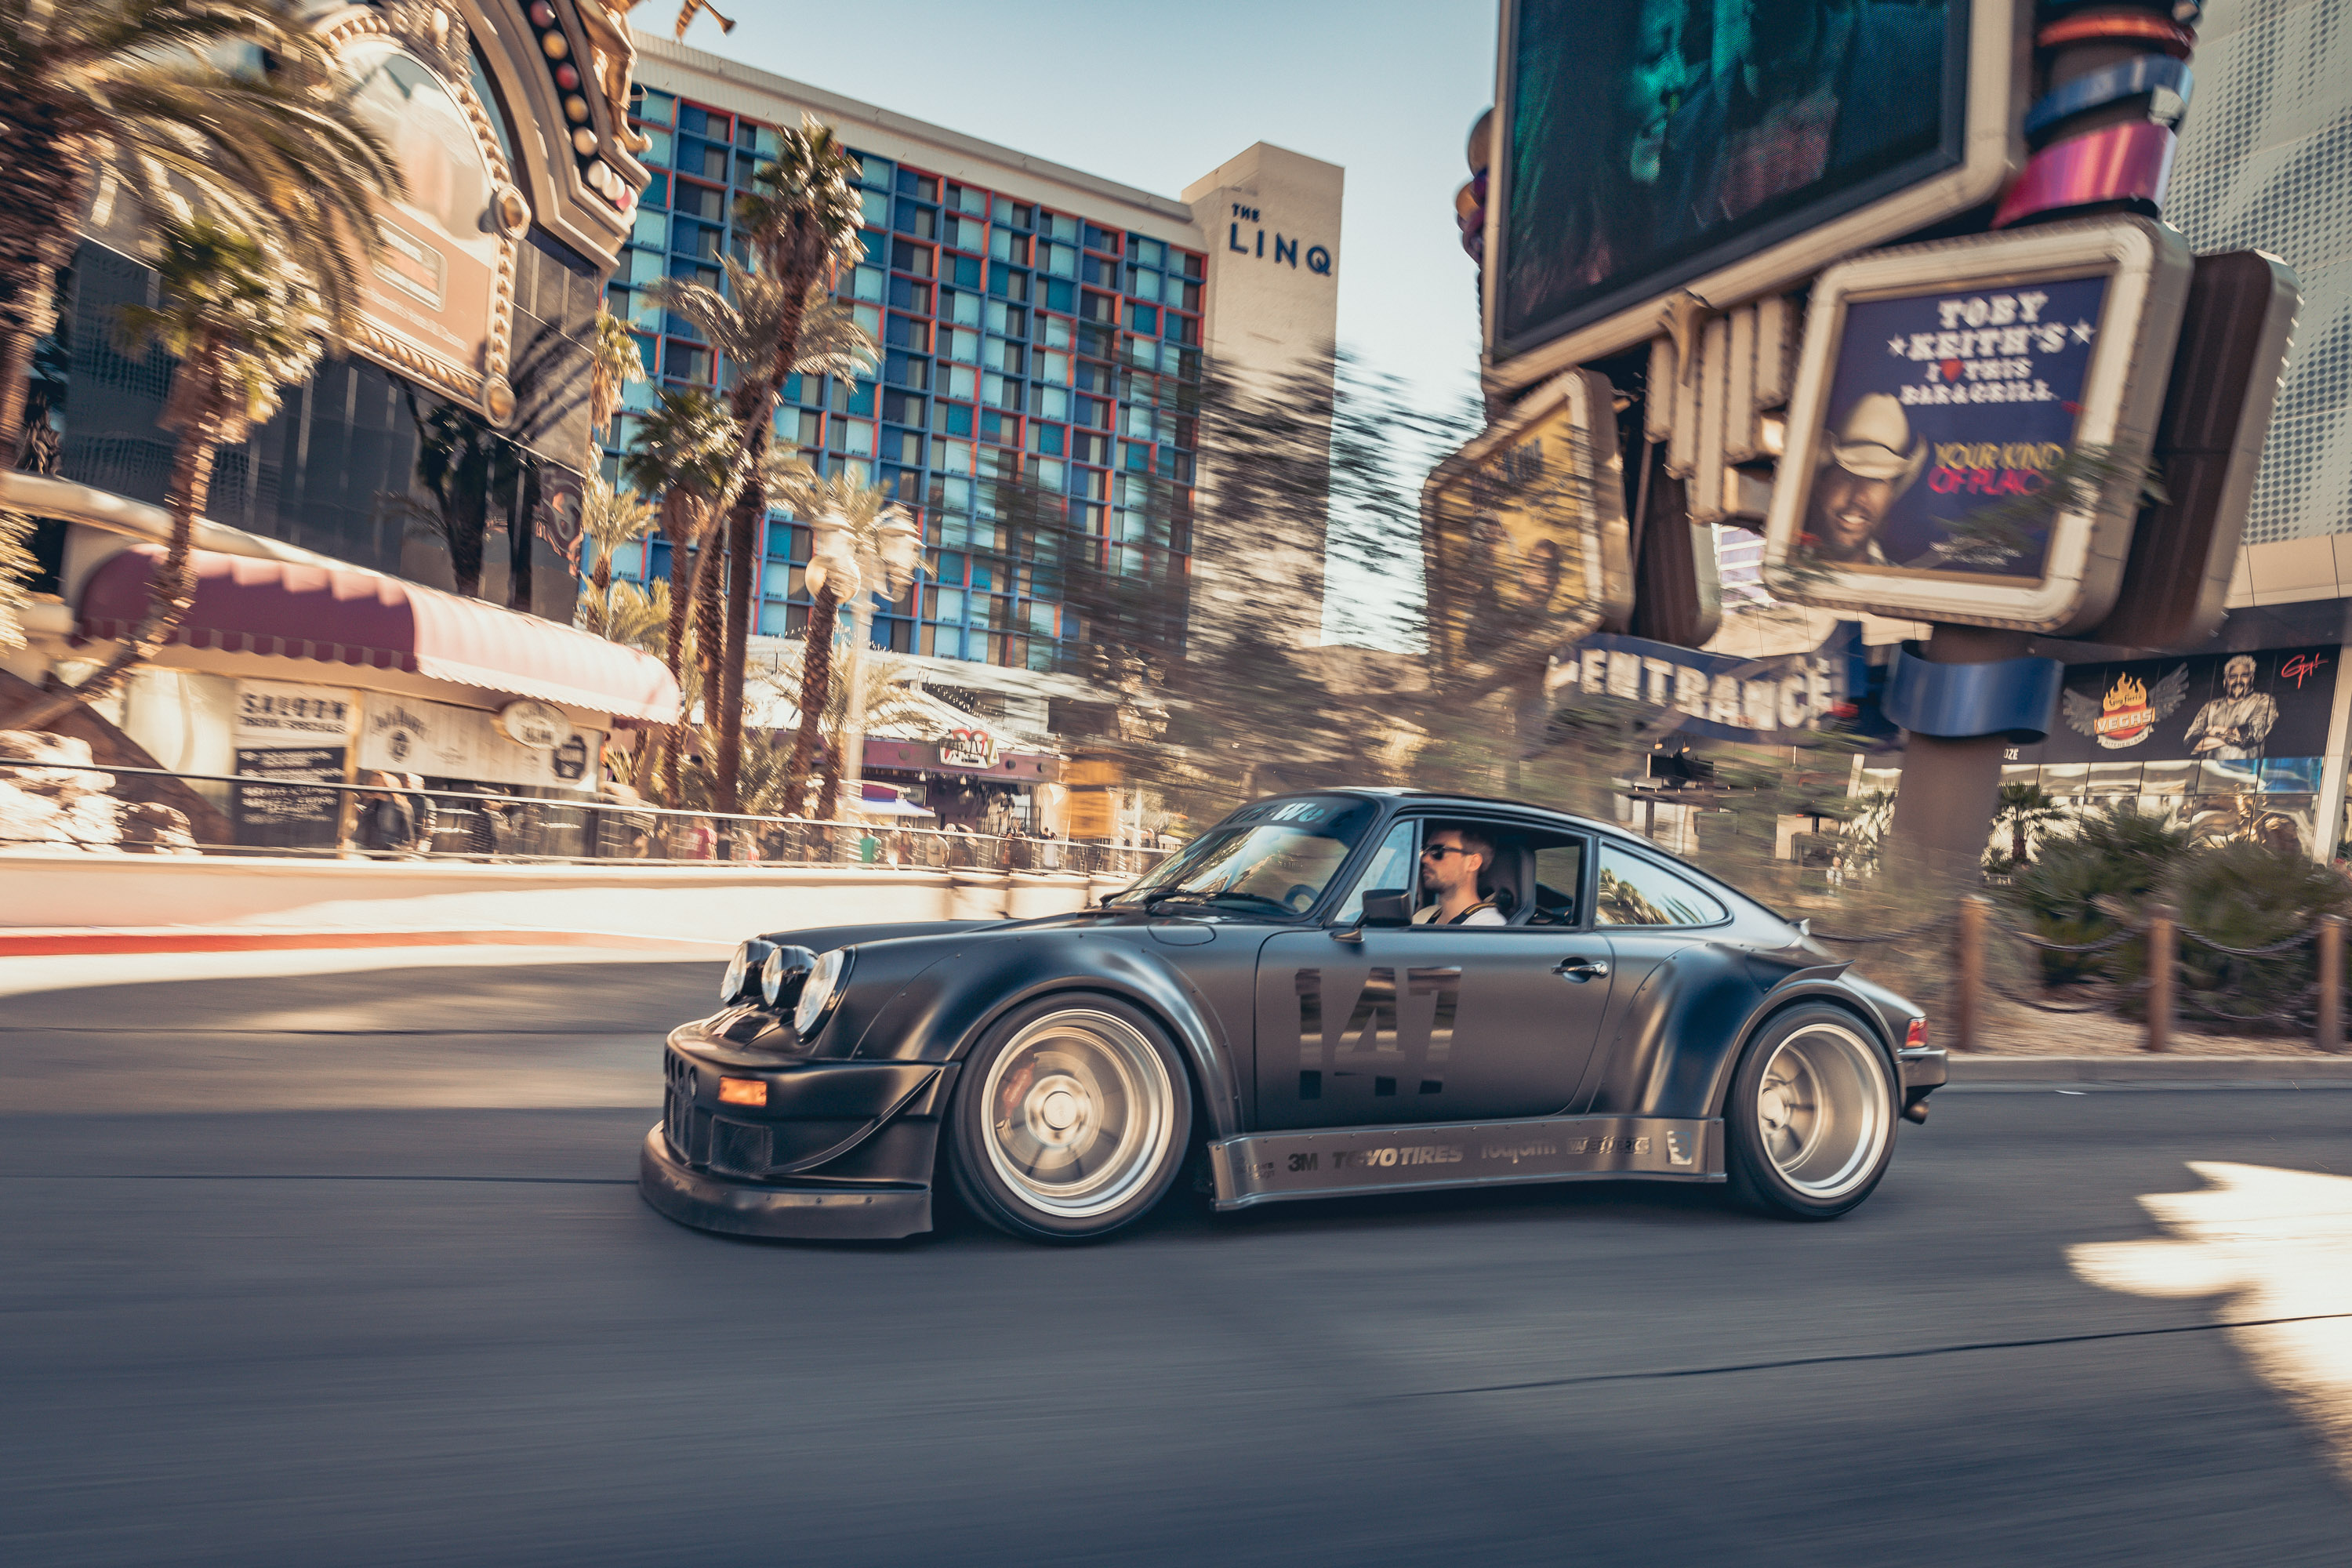 Rolling shot of the Need for Speed Porsche 964 driven by BBC Top Gear